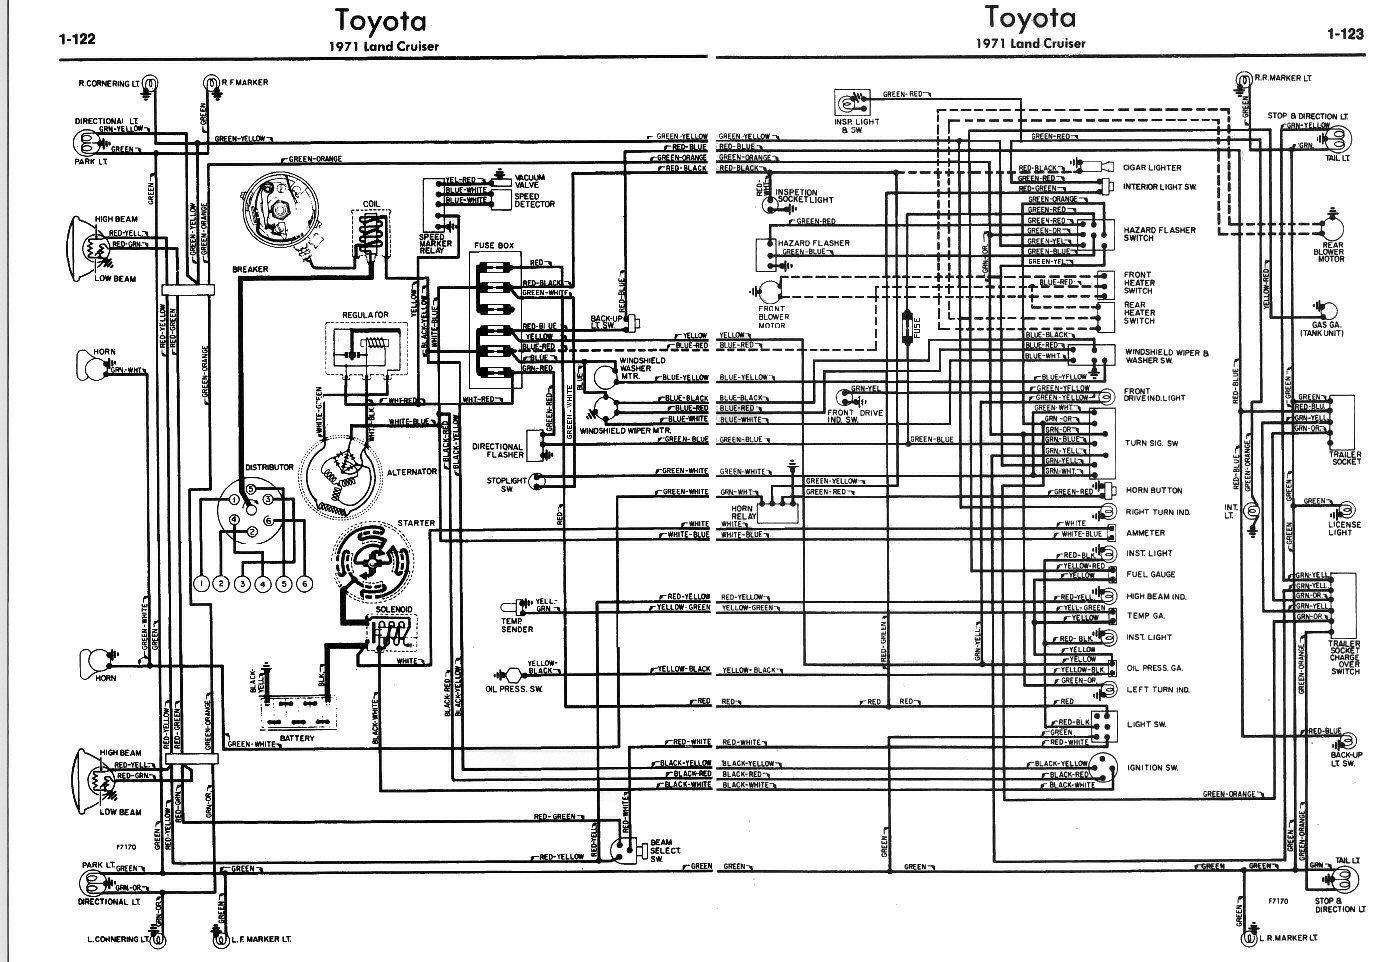 1969 land cruiser wiring diagram trusted wiring diagrams u2022 rh sivamuni com